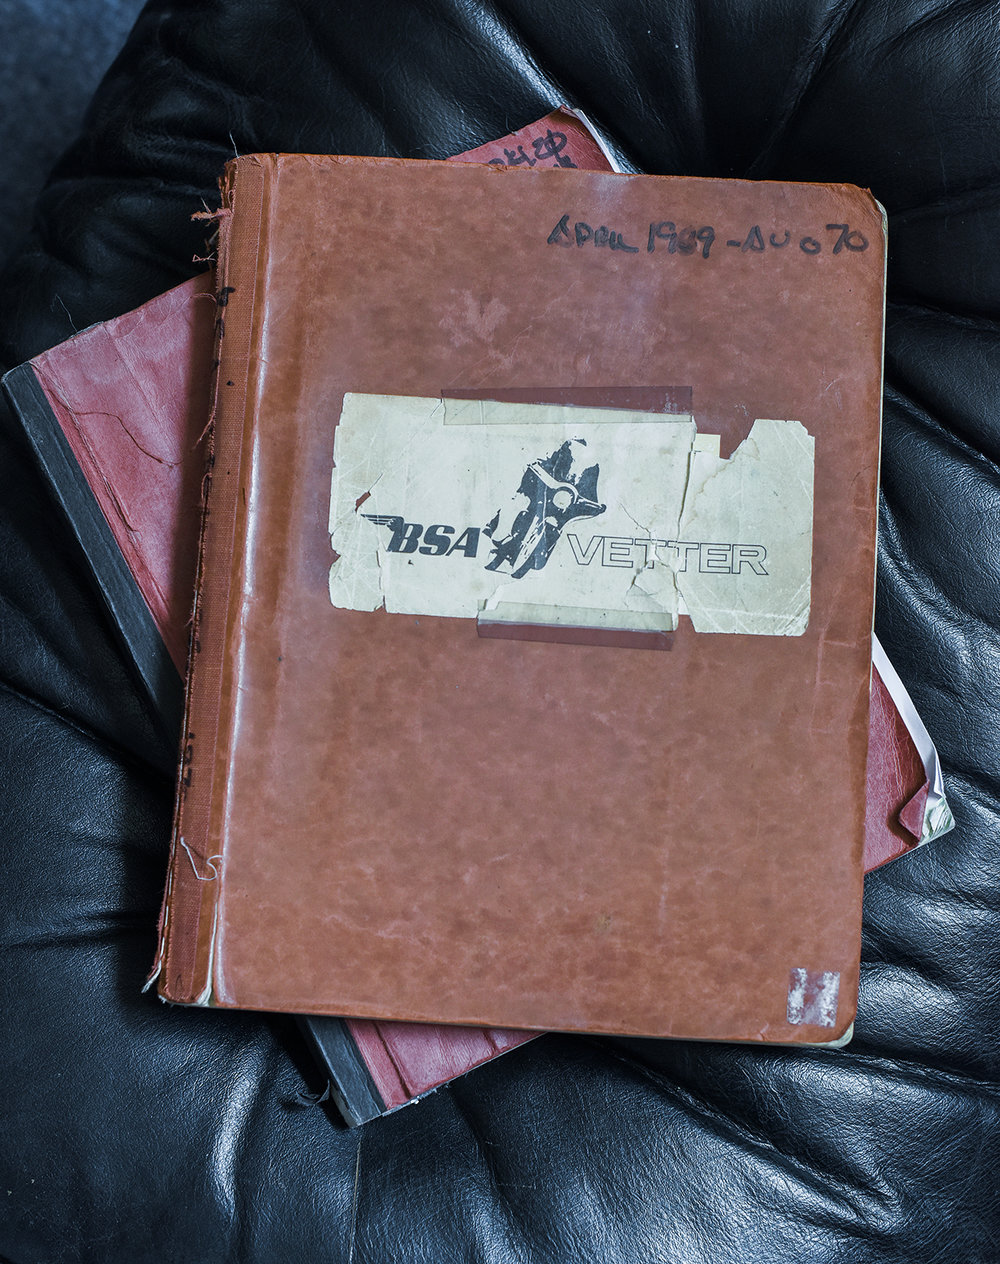 Vetter had a notebook for each of his projects. This is the book for his 1969 redesign of the BSA Rocket lll. The book contains his sketches as well as notes on every meeting he had with BSA staff. The design was eventually released as the Triumph X-75 Hurricane in 1972. This notebook is a historic treasure. (Photos: M. Blanchard)